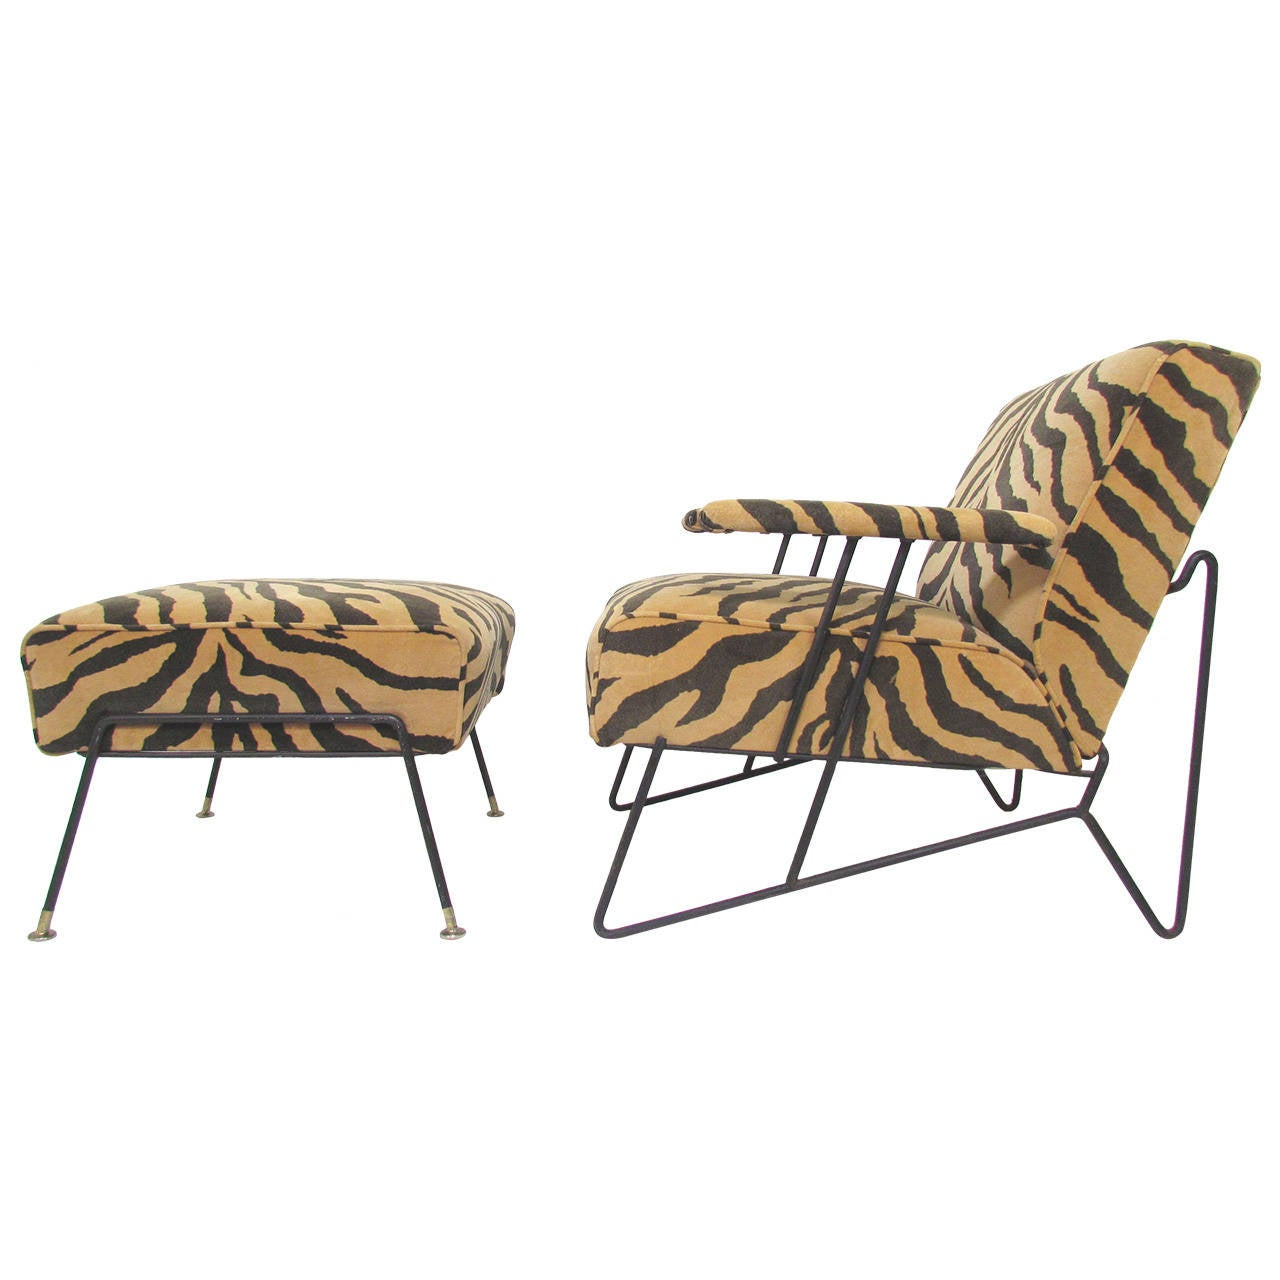 Sculptural Wrought Iron Lounge Chair and Ottoman by Dorothy Schindele at 1stdibs